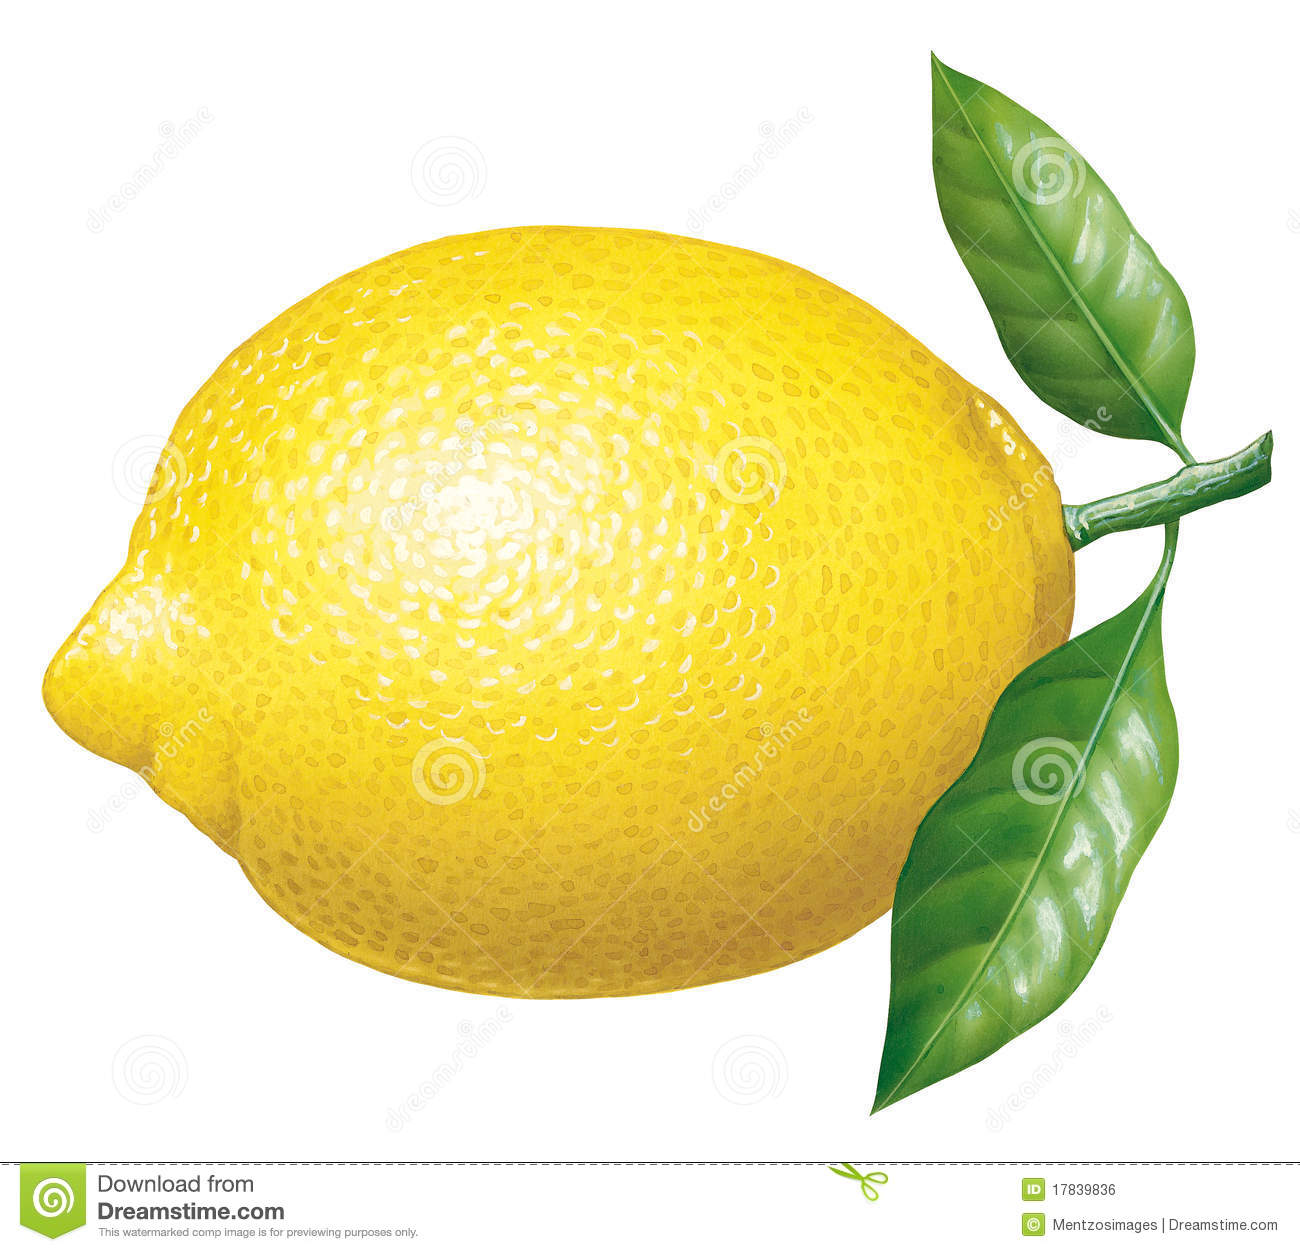 Royalty Free Stock Image Lemon Image17839836 on Lemon Border Clip Art